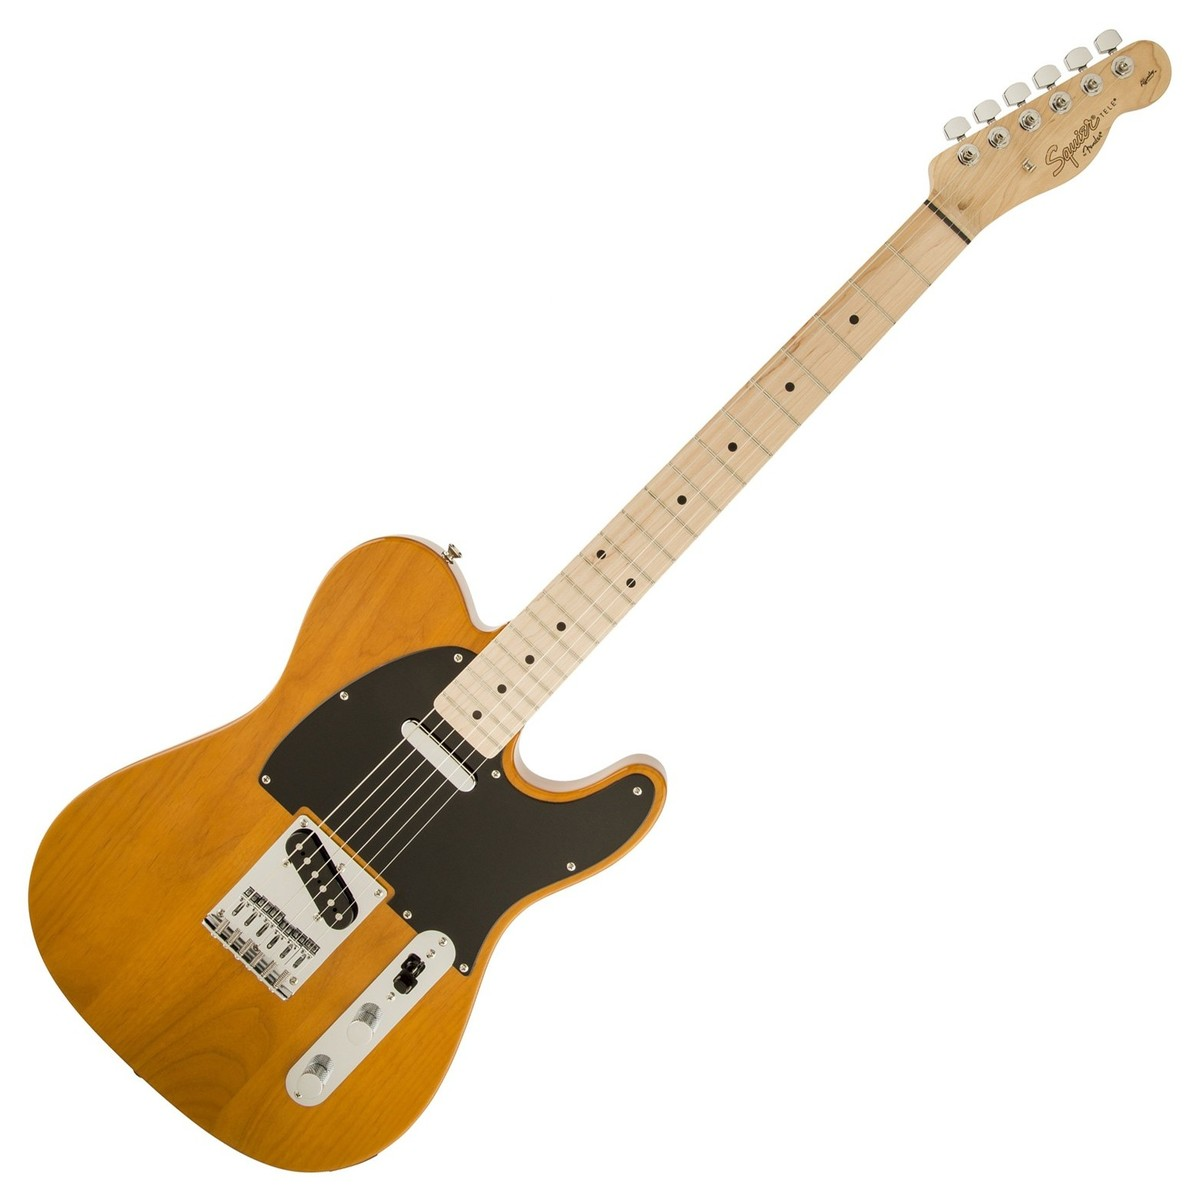 squier by fender affinity telecaster mn butterscotch blonde boxopen at gear4music. Black Bedroom Furniture Sets. Home Design Ideas